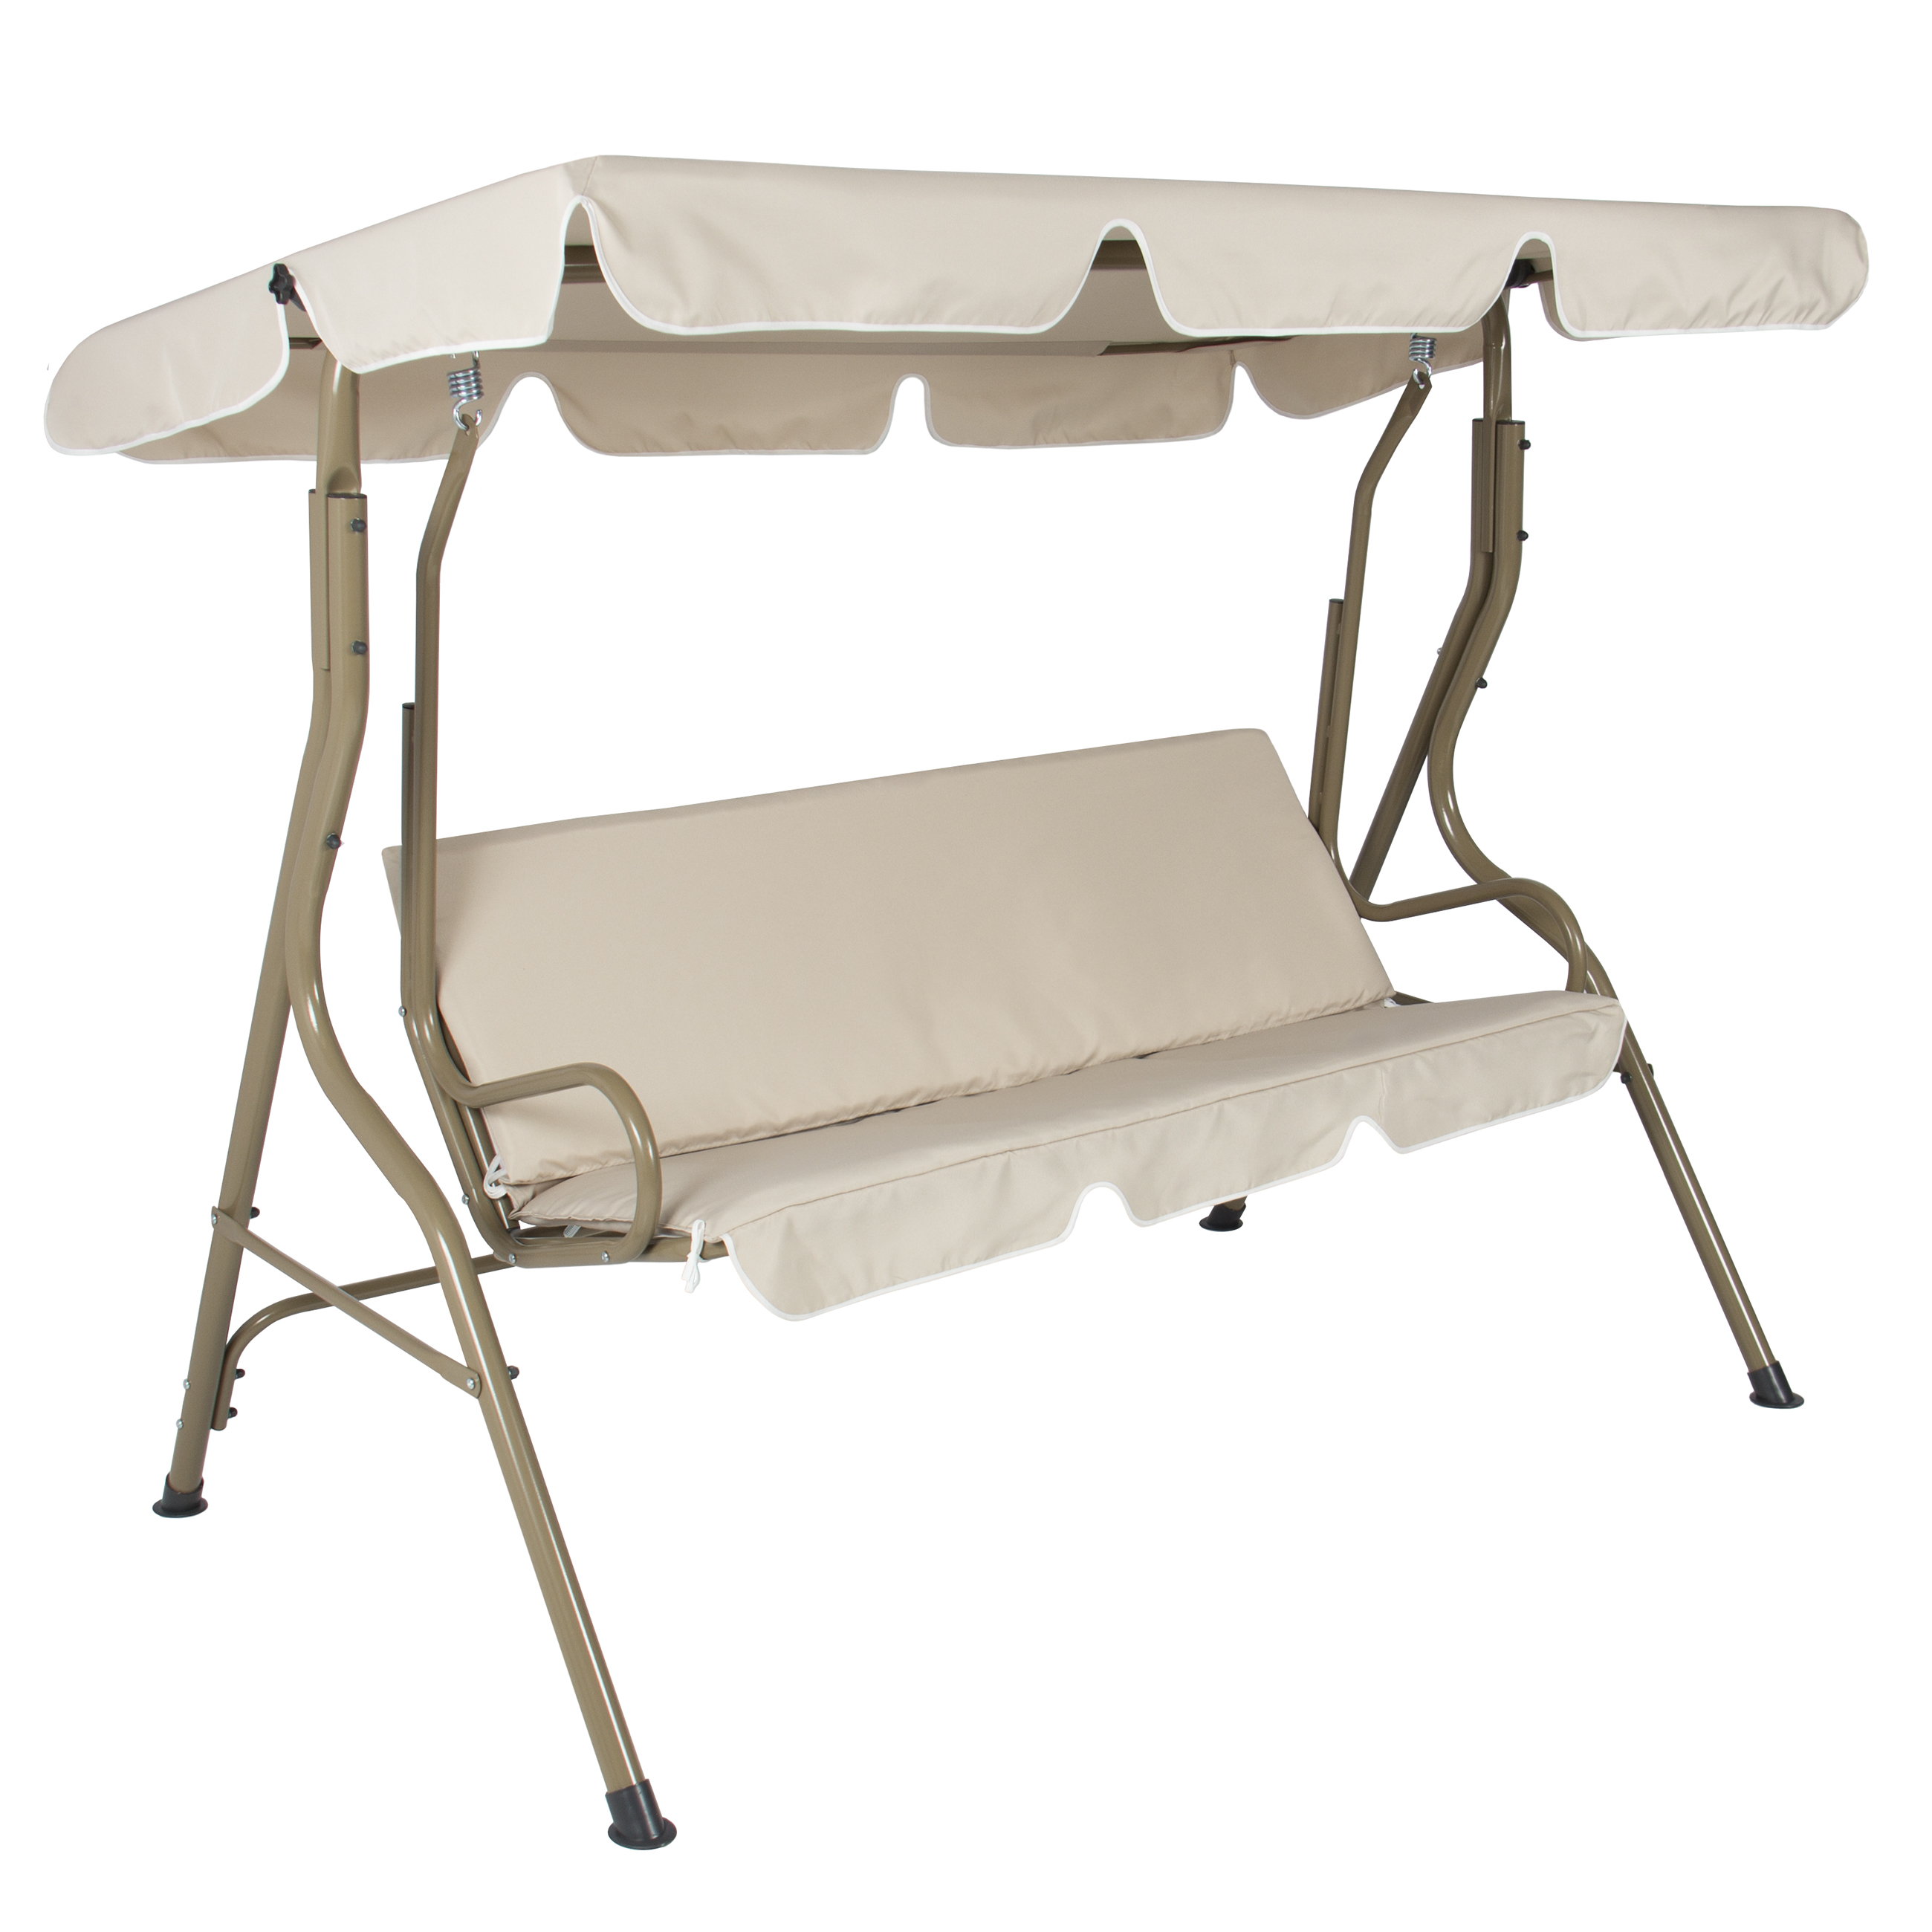 Best Choice Products 2 Person Outdoor Large Convertible Canopy Swing Glider Lounge Chair W Removable Cushions Beige